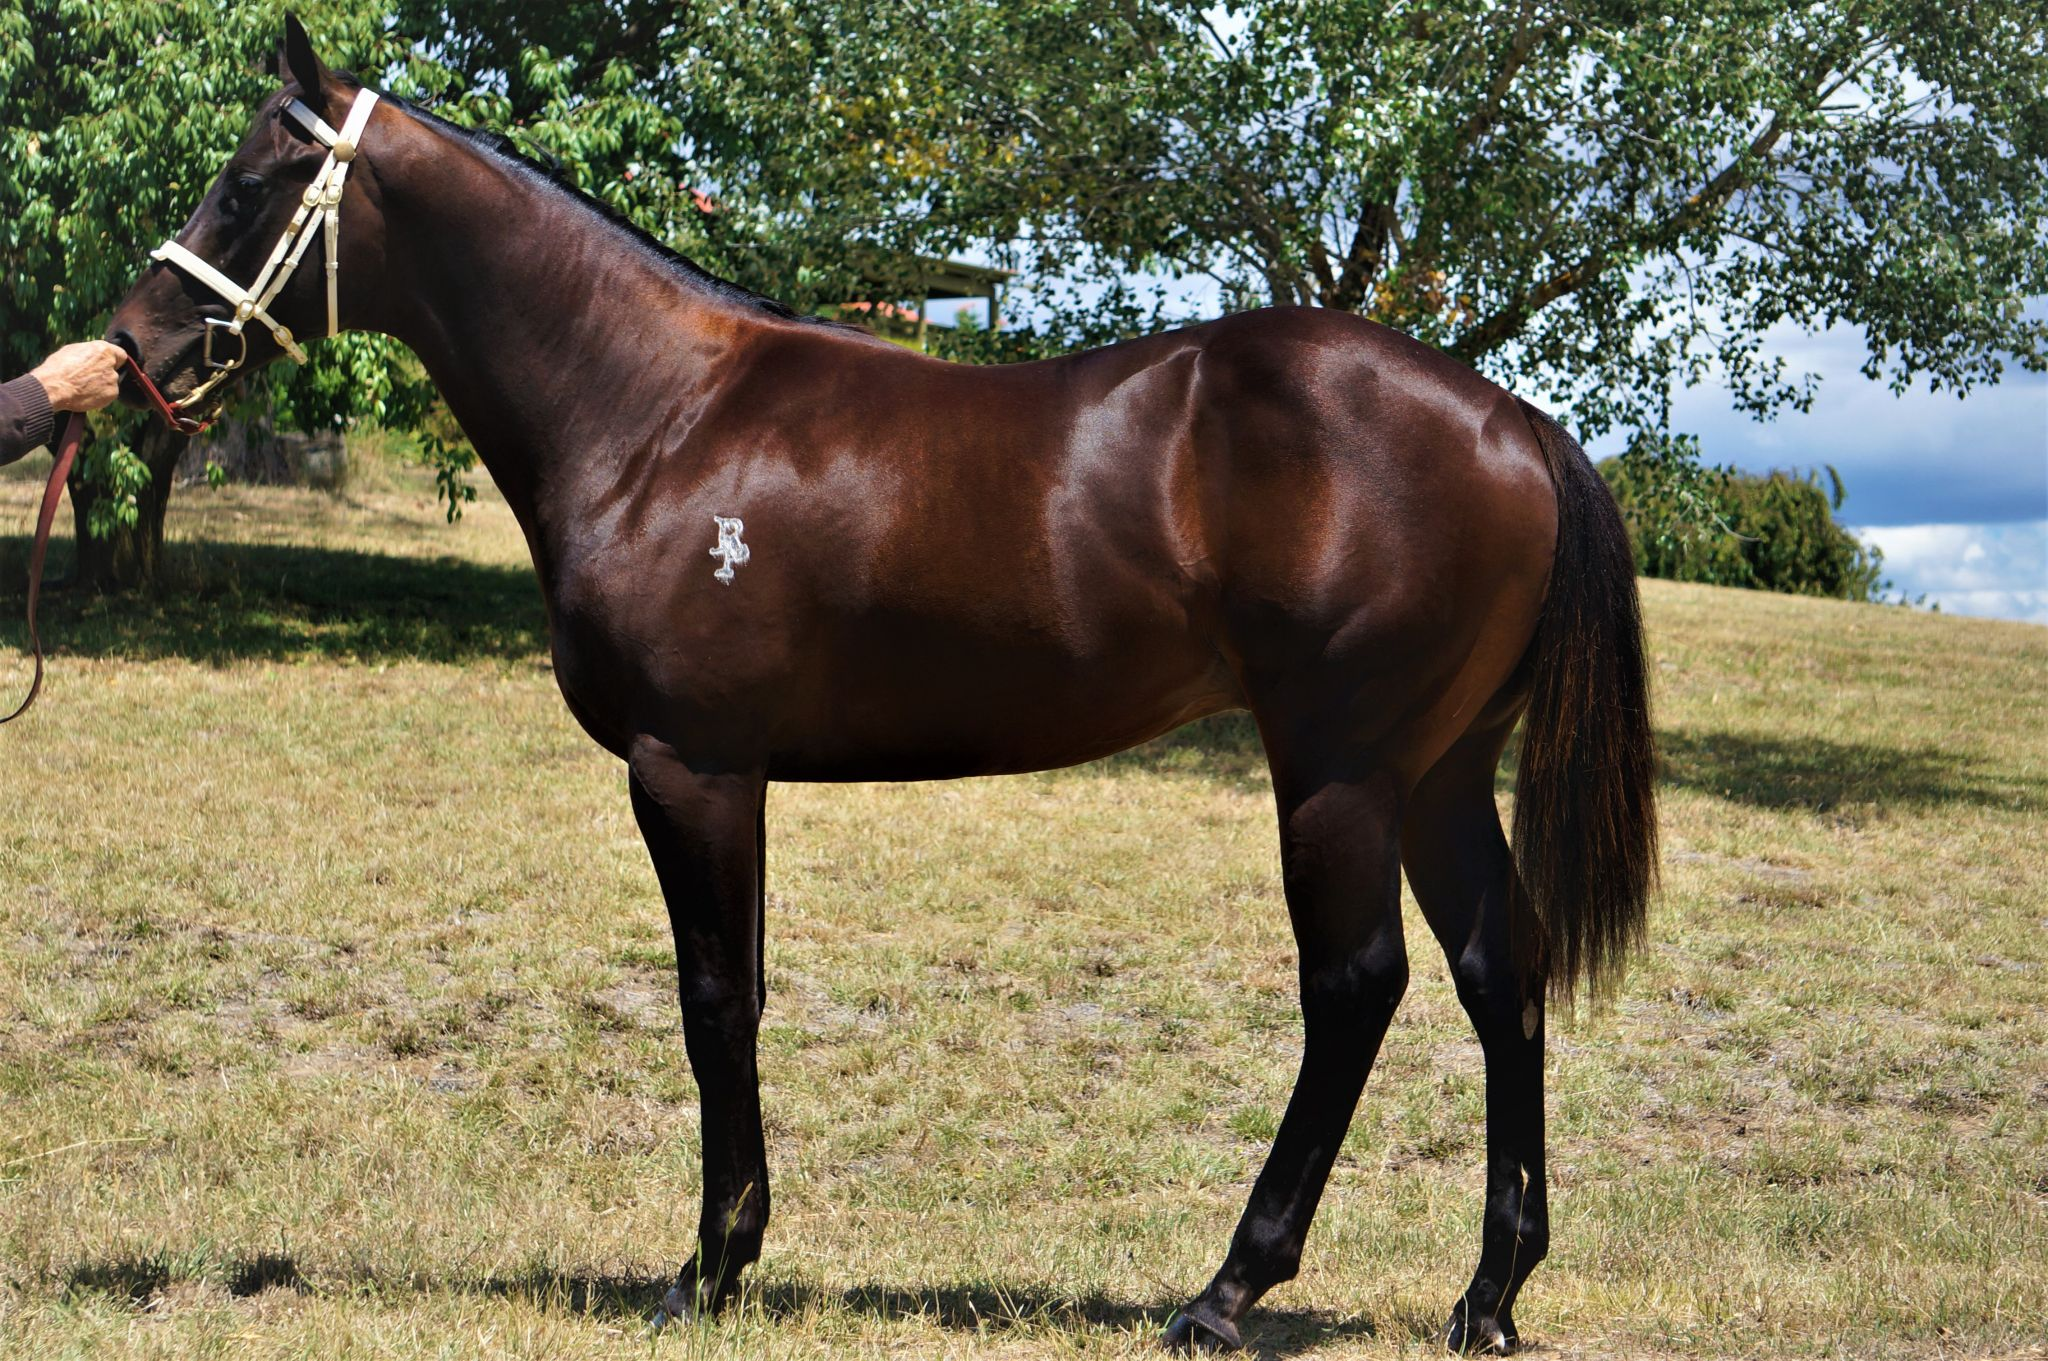 Oyashio at 2018 Classic Yearling Sale